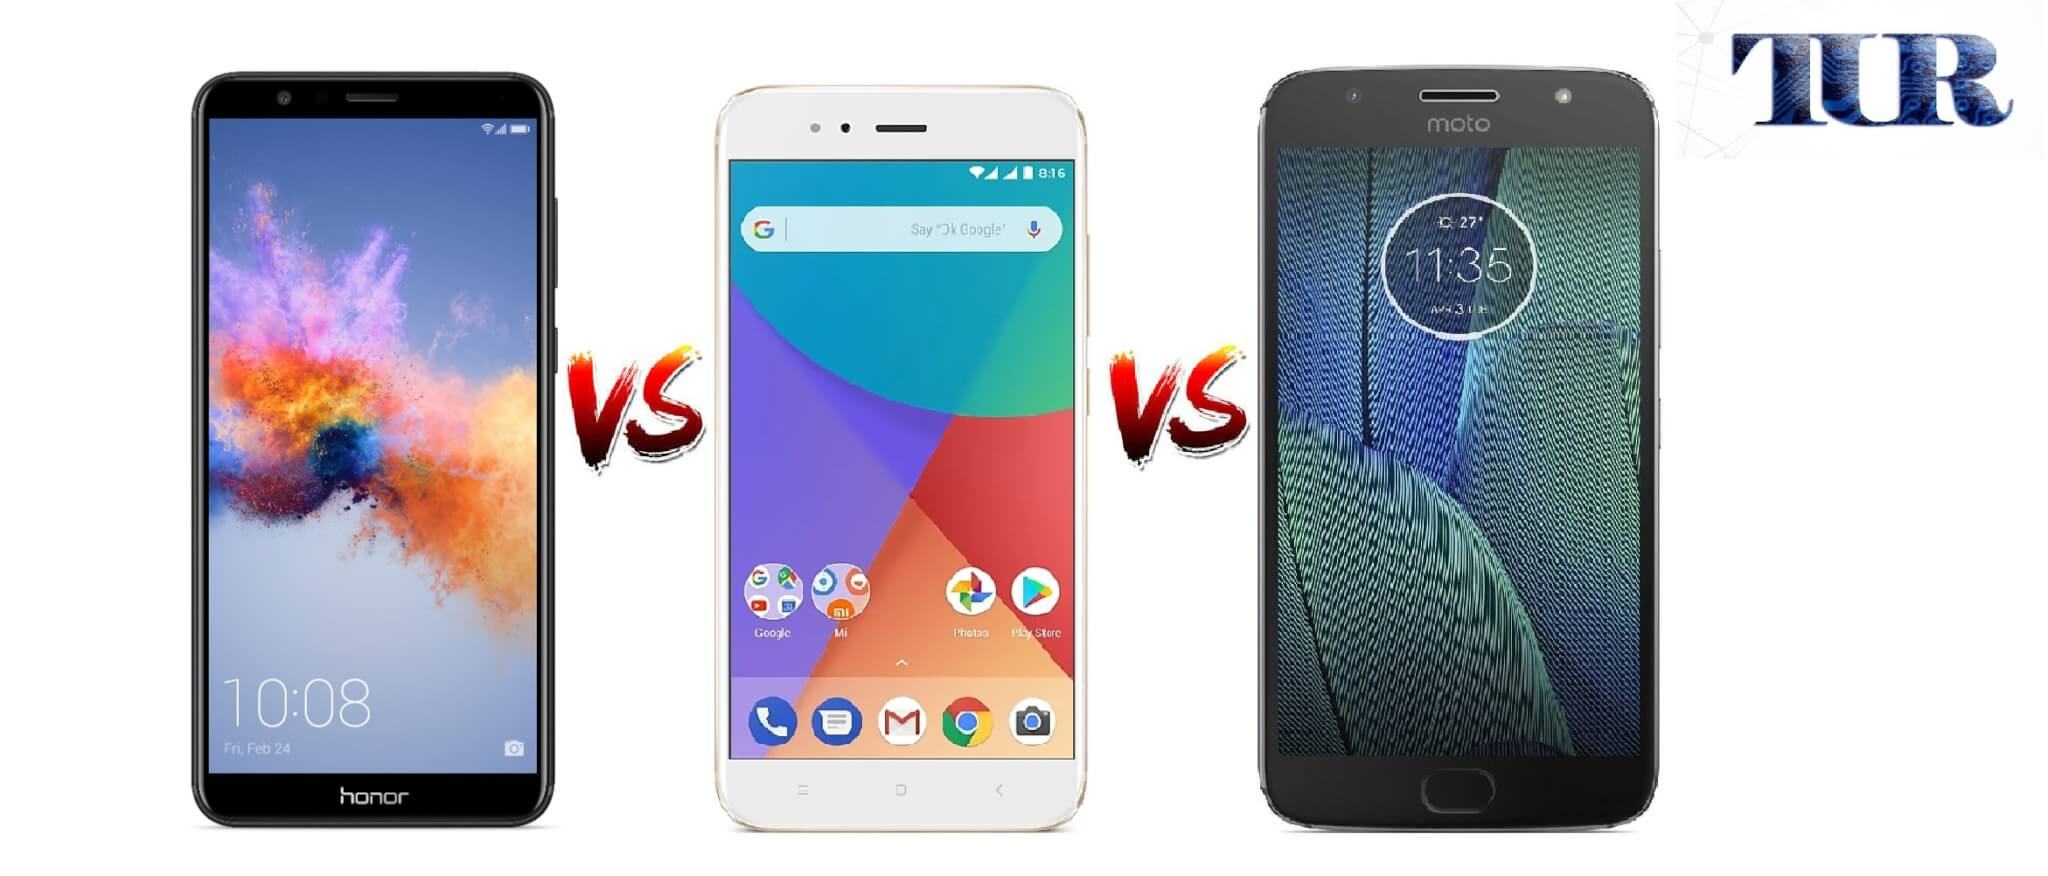 Xiaomi MI A1 vs Honor 7X vs Moto G5S Plus Detailed